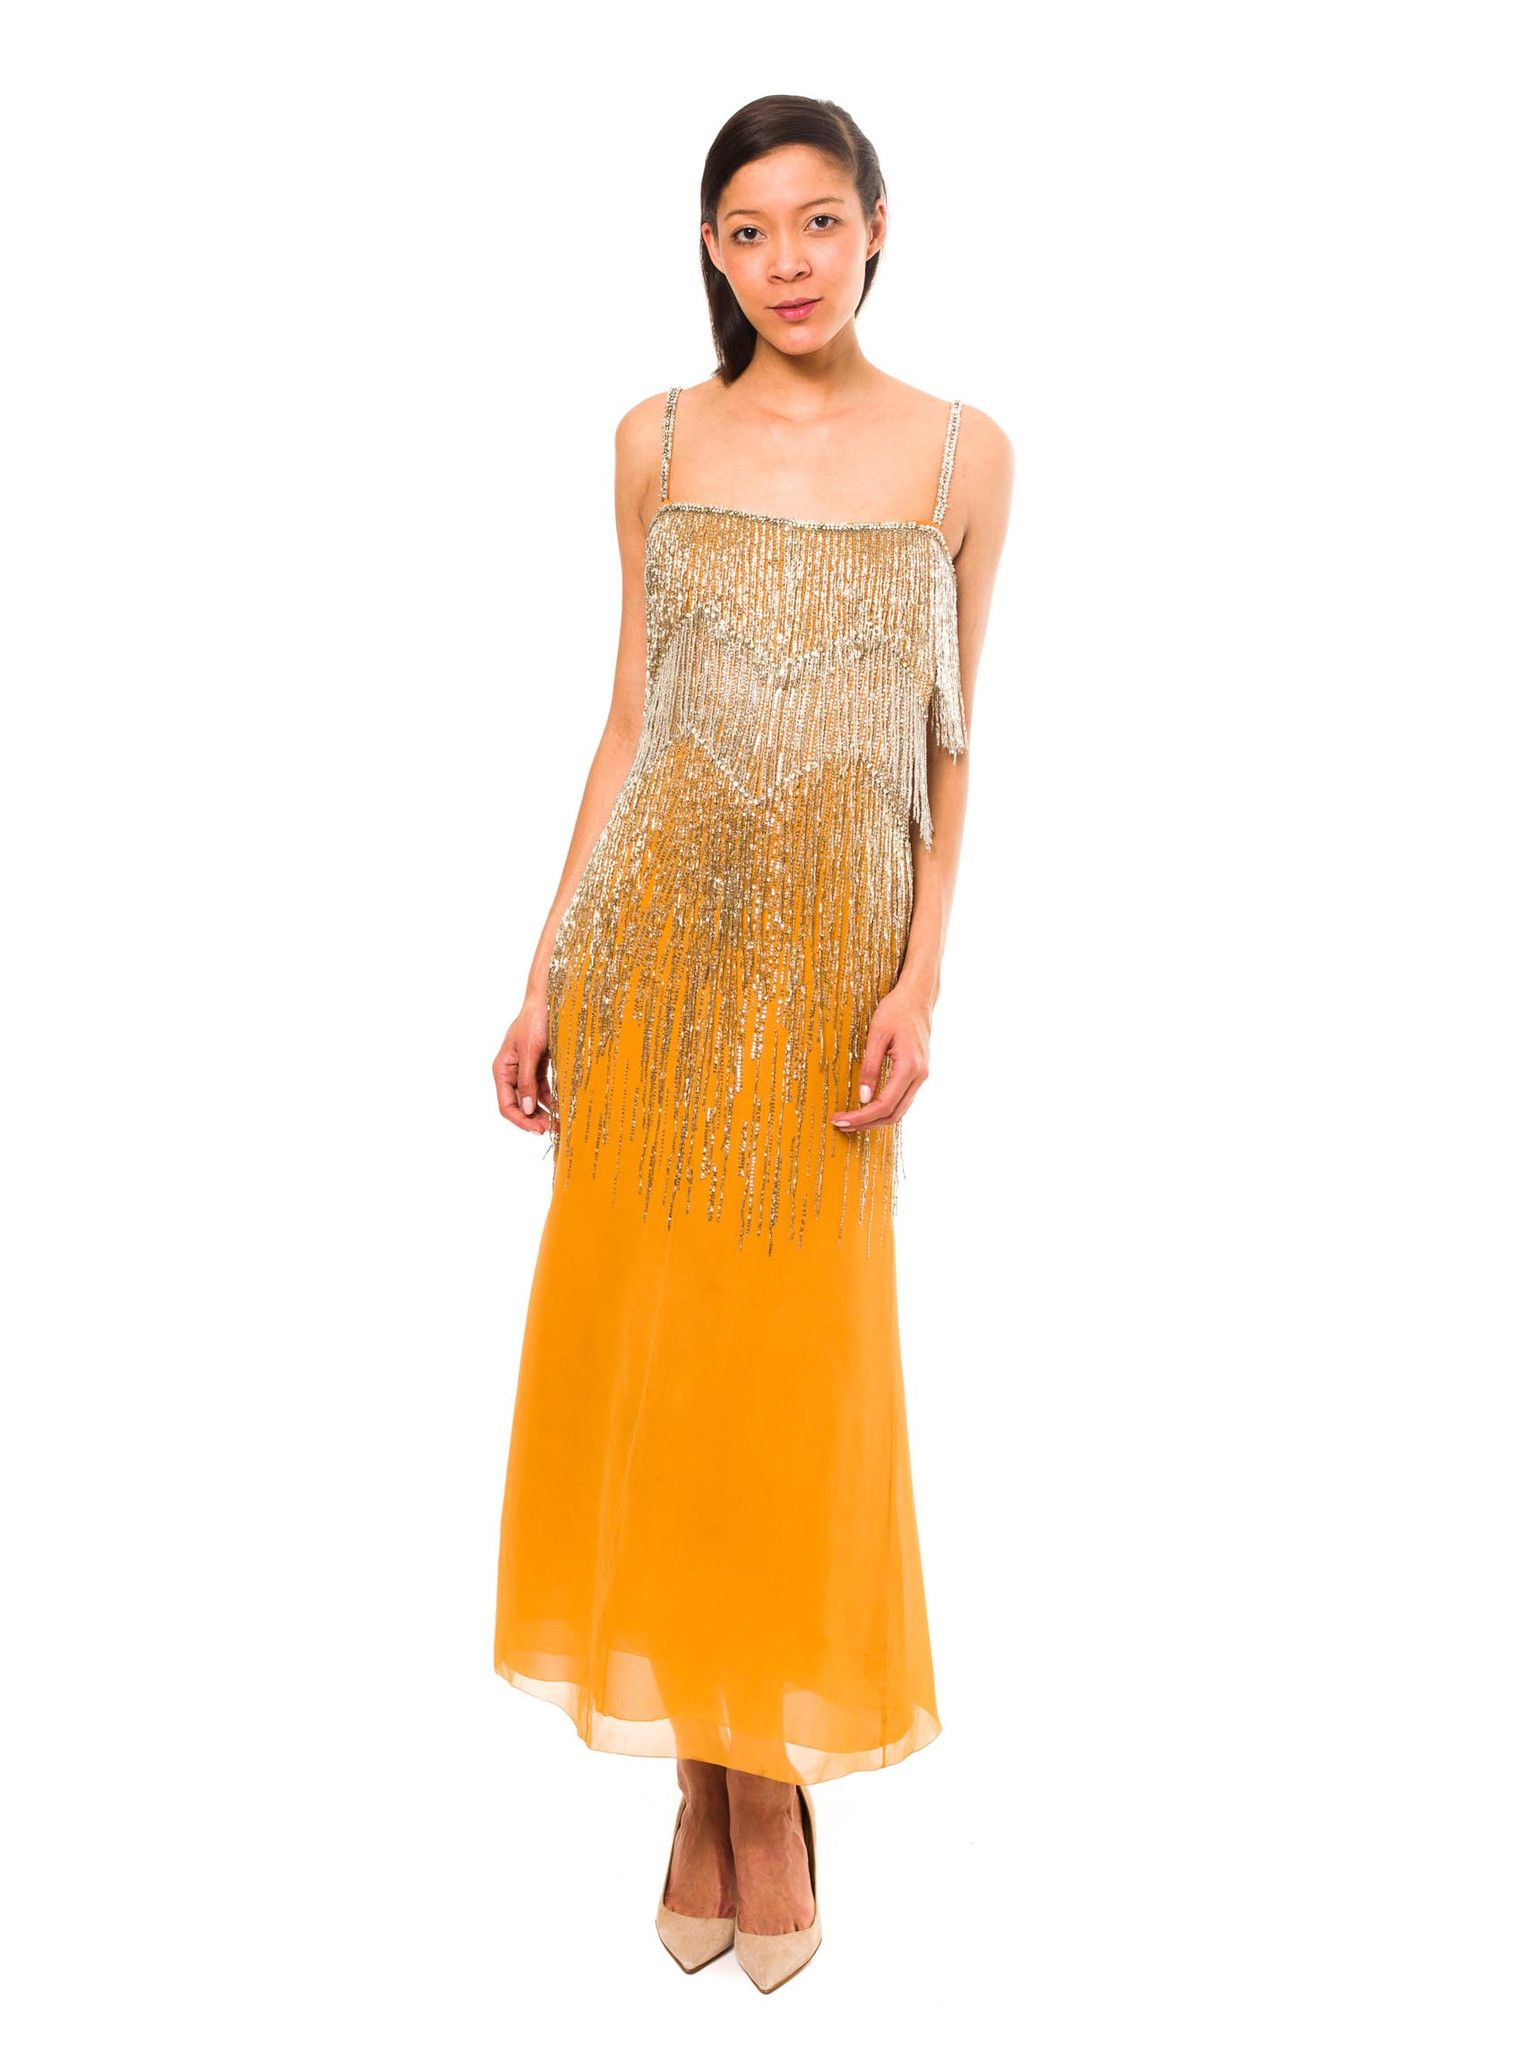 Christian Dior Haute Couture Beaded Fringe Chiffon Gown